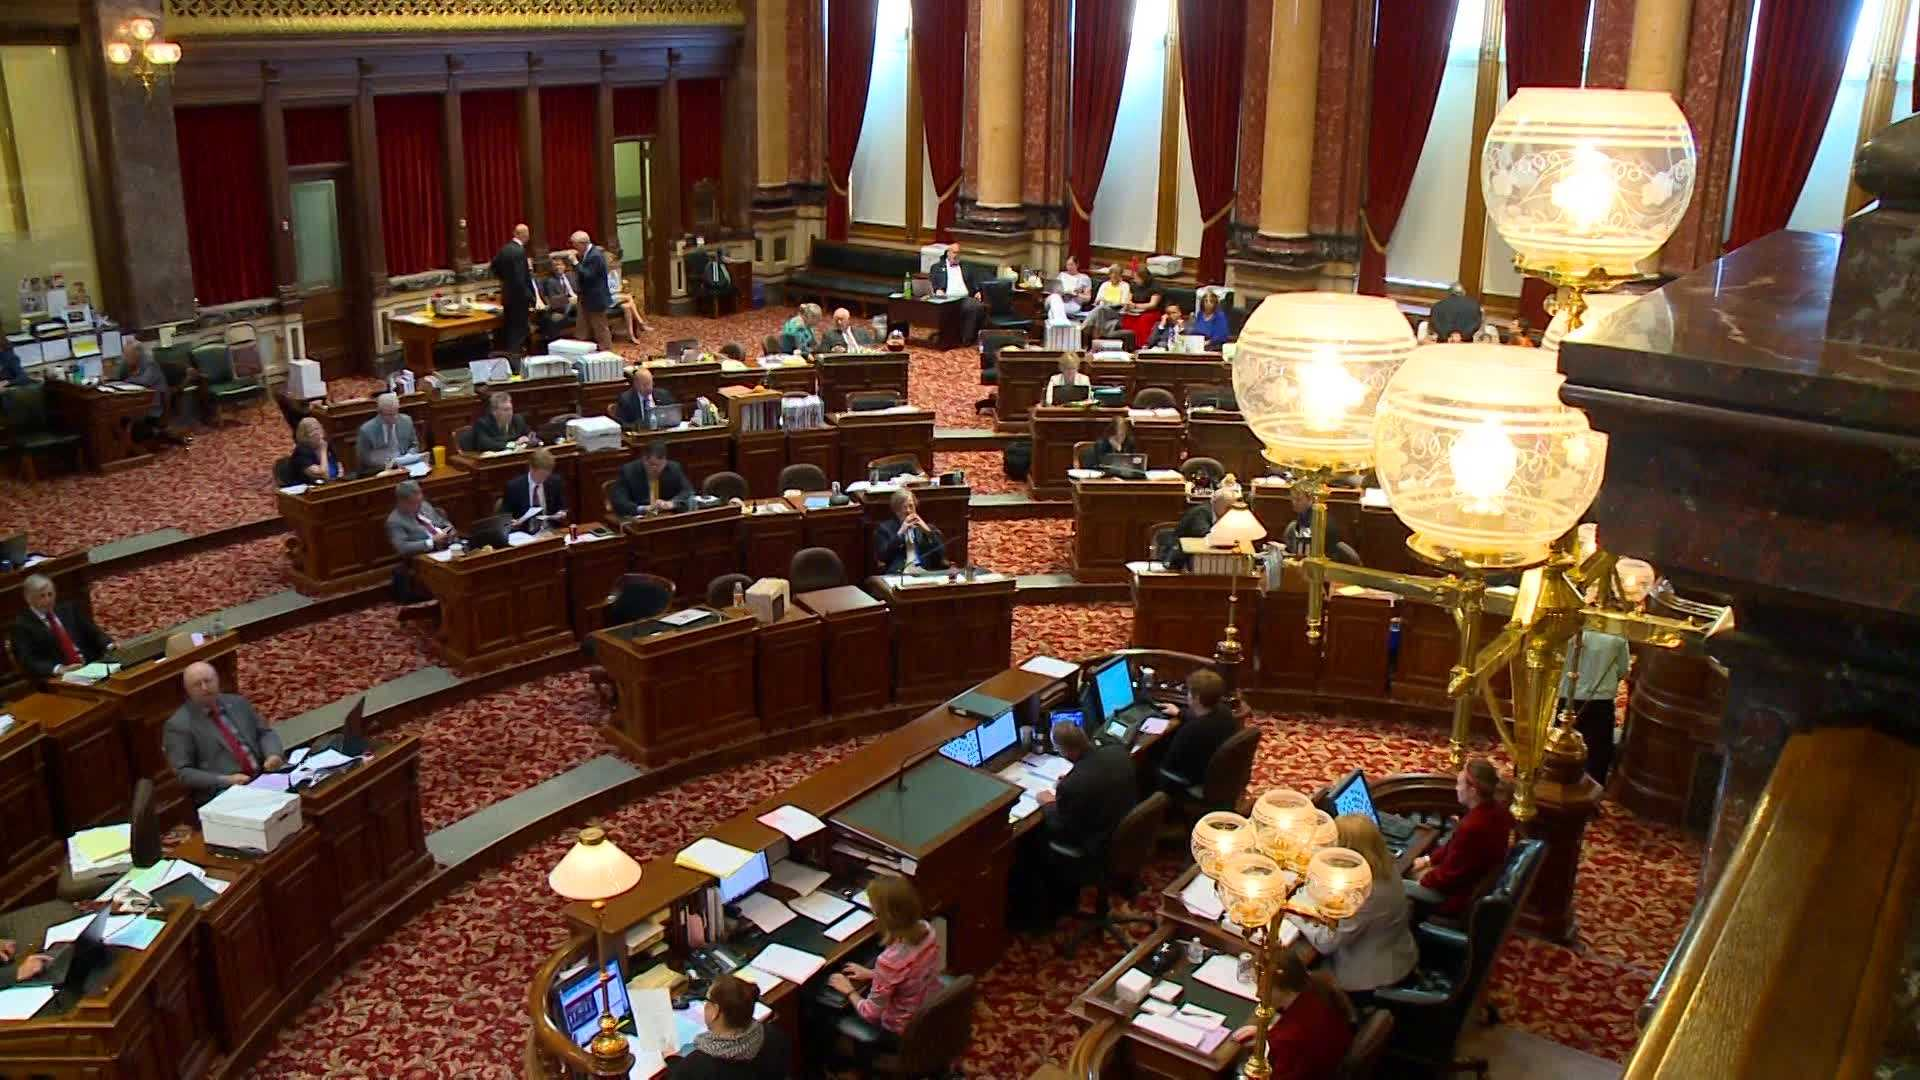 The 2016 legislative session begins with issues either unresolved or lingering from the previous session.